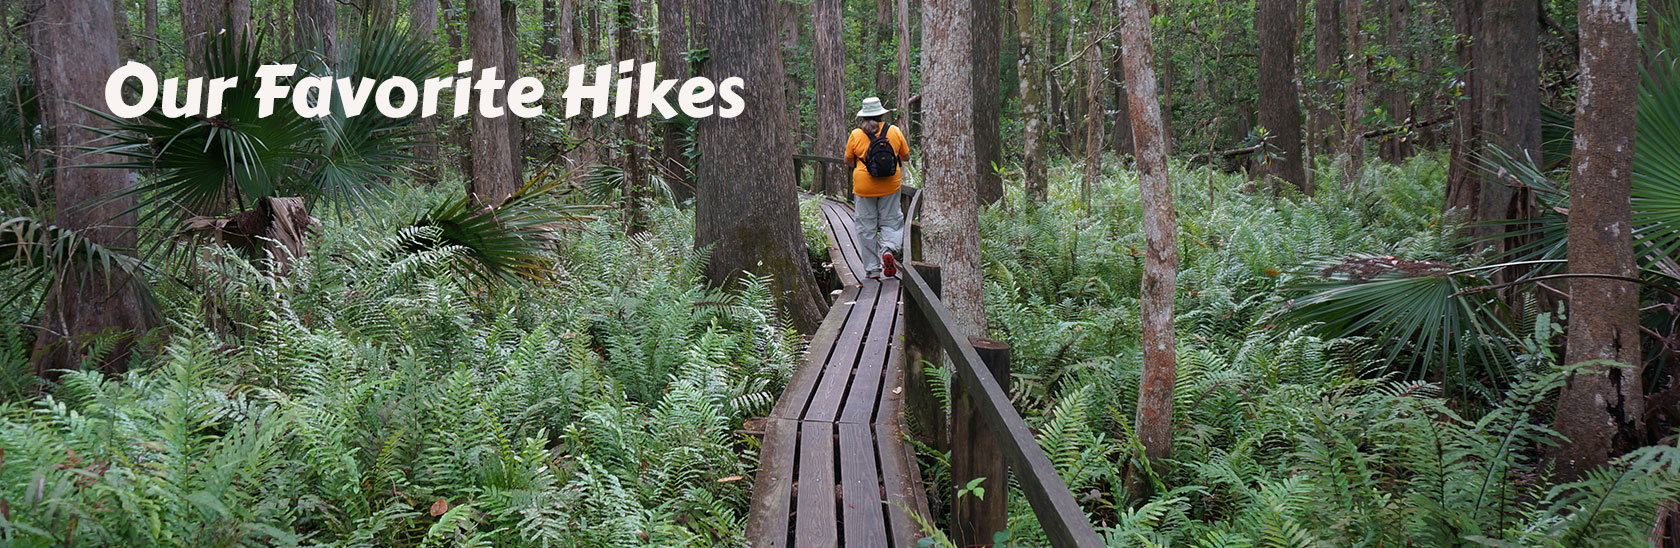 Our Favorite Hikes